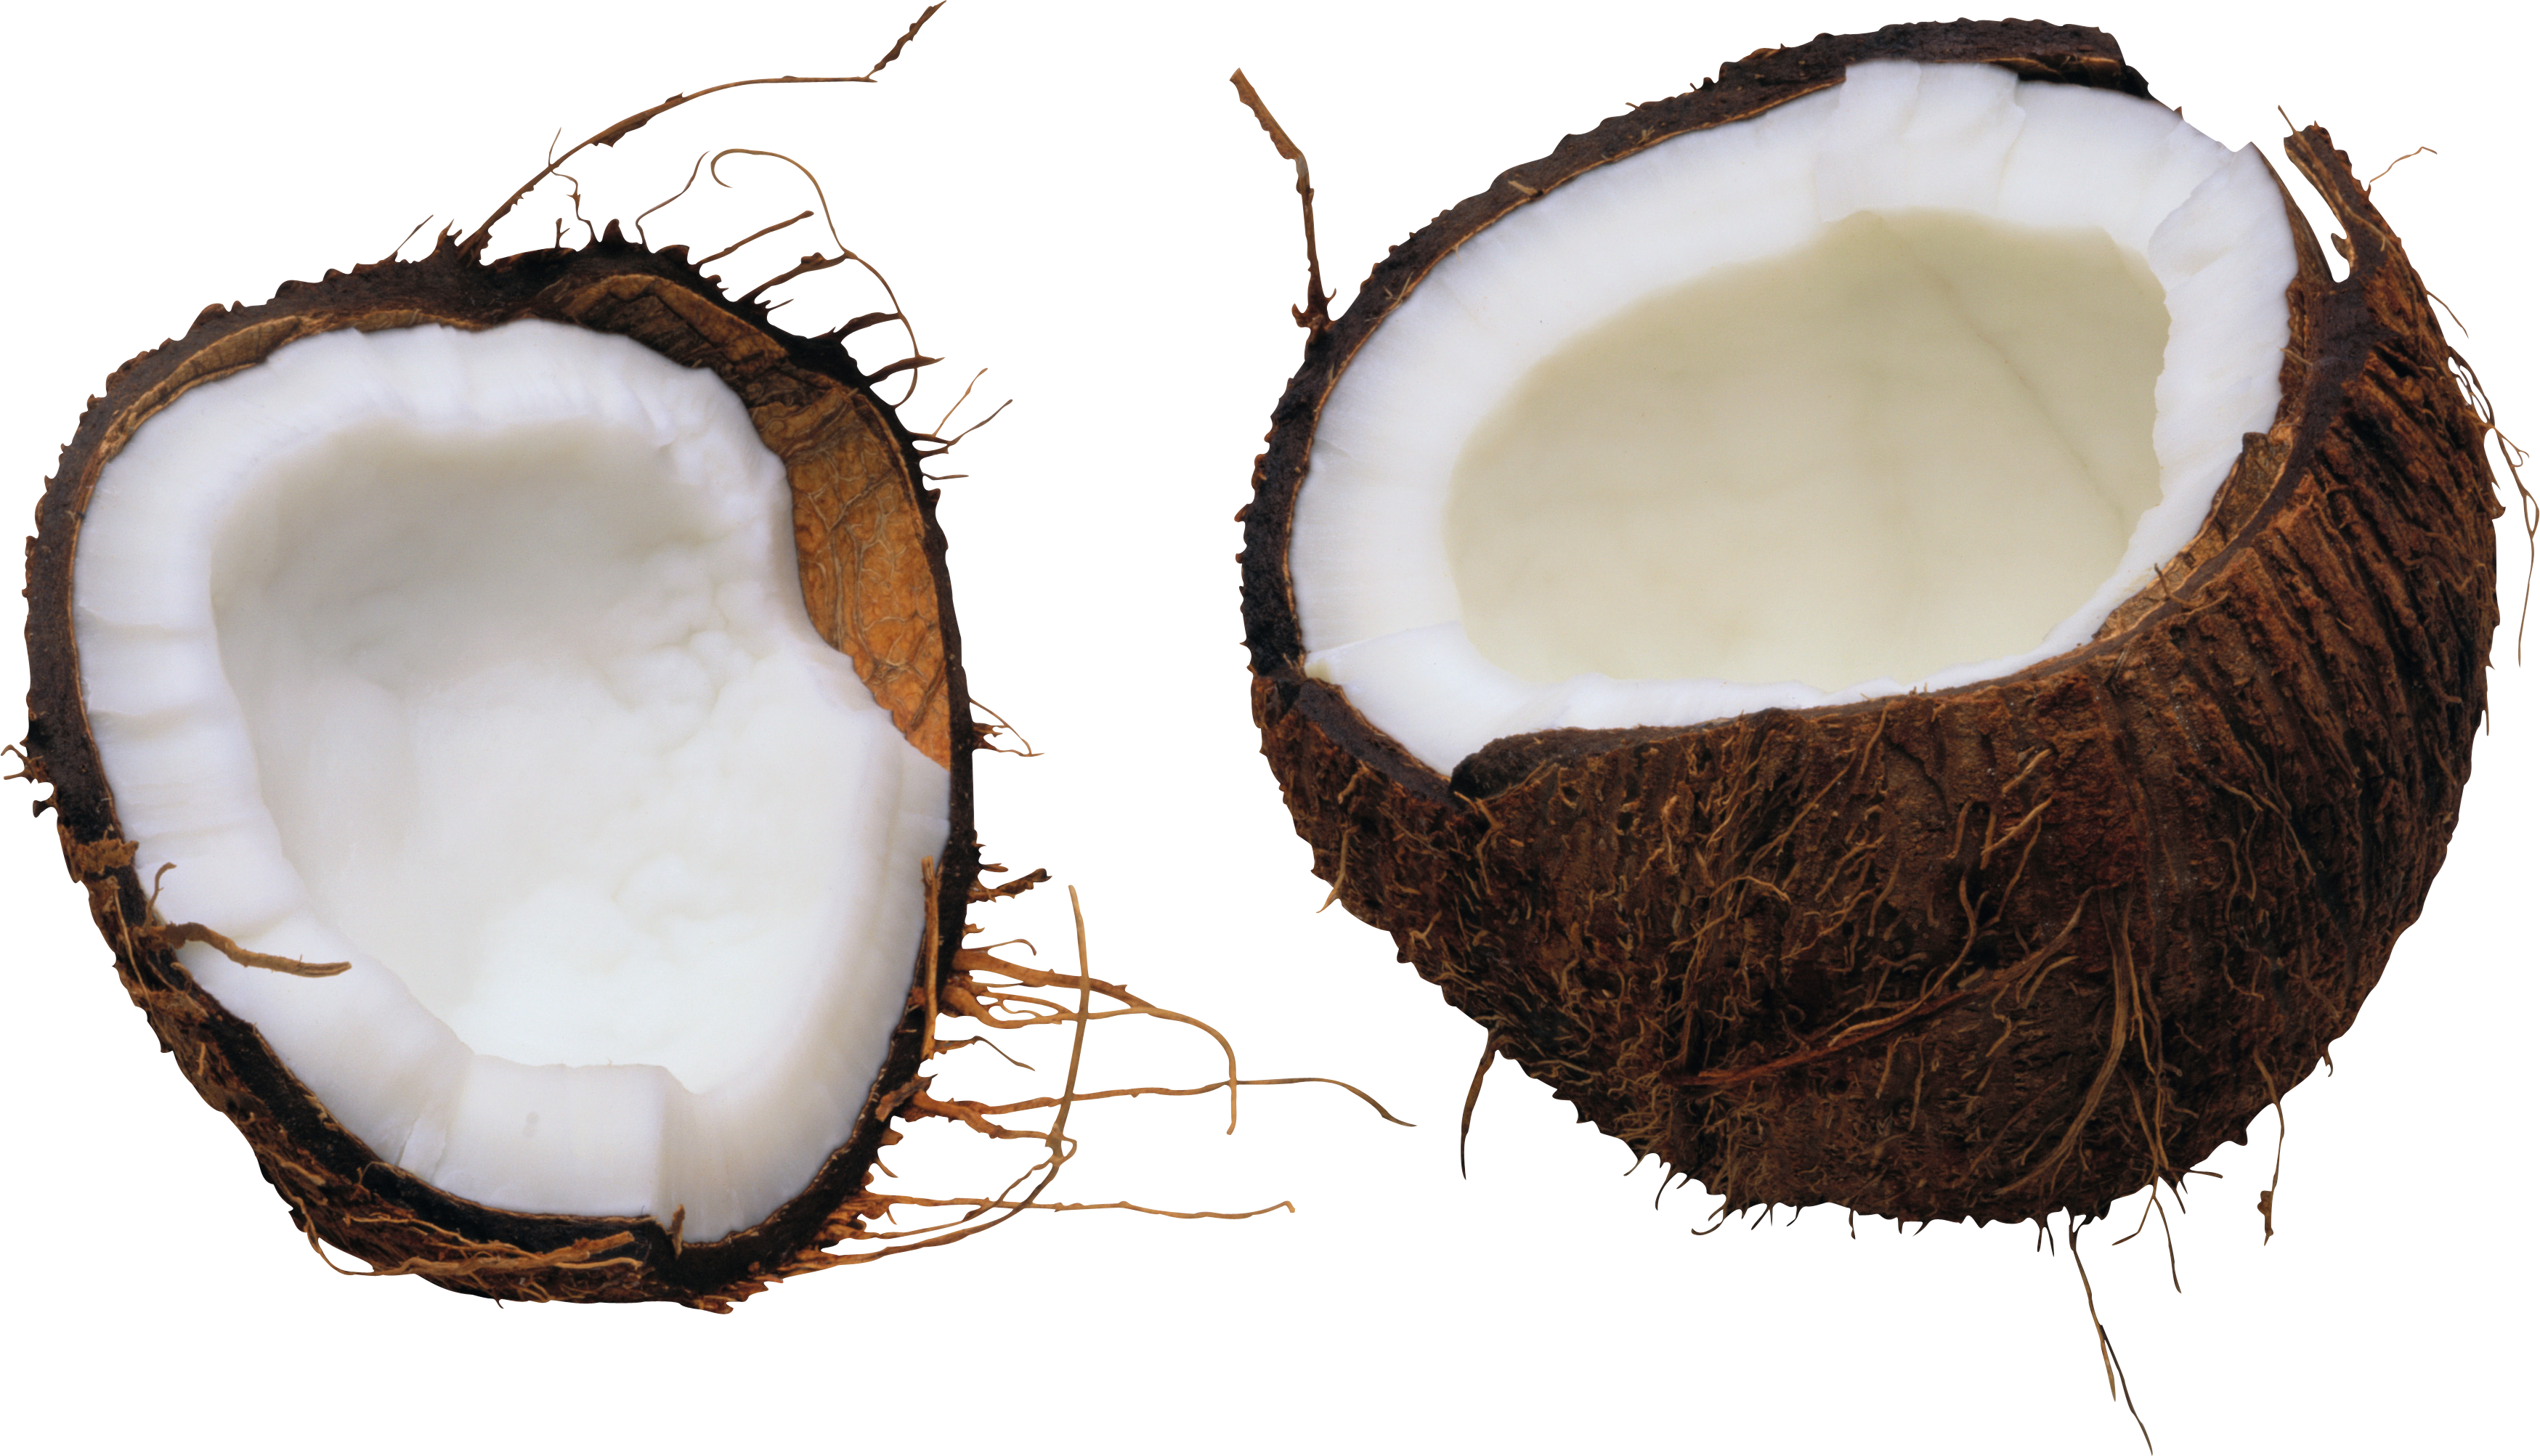 Coconut Transparent Image PNG Images